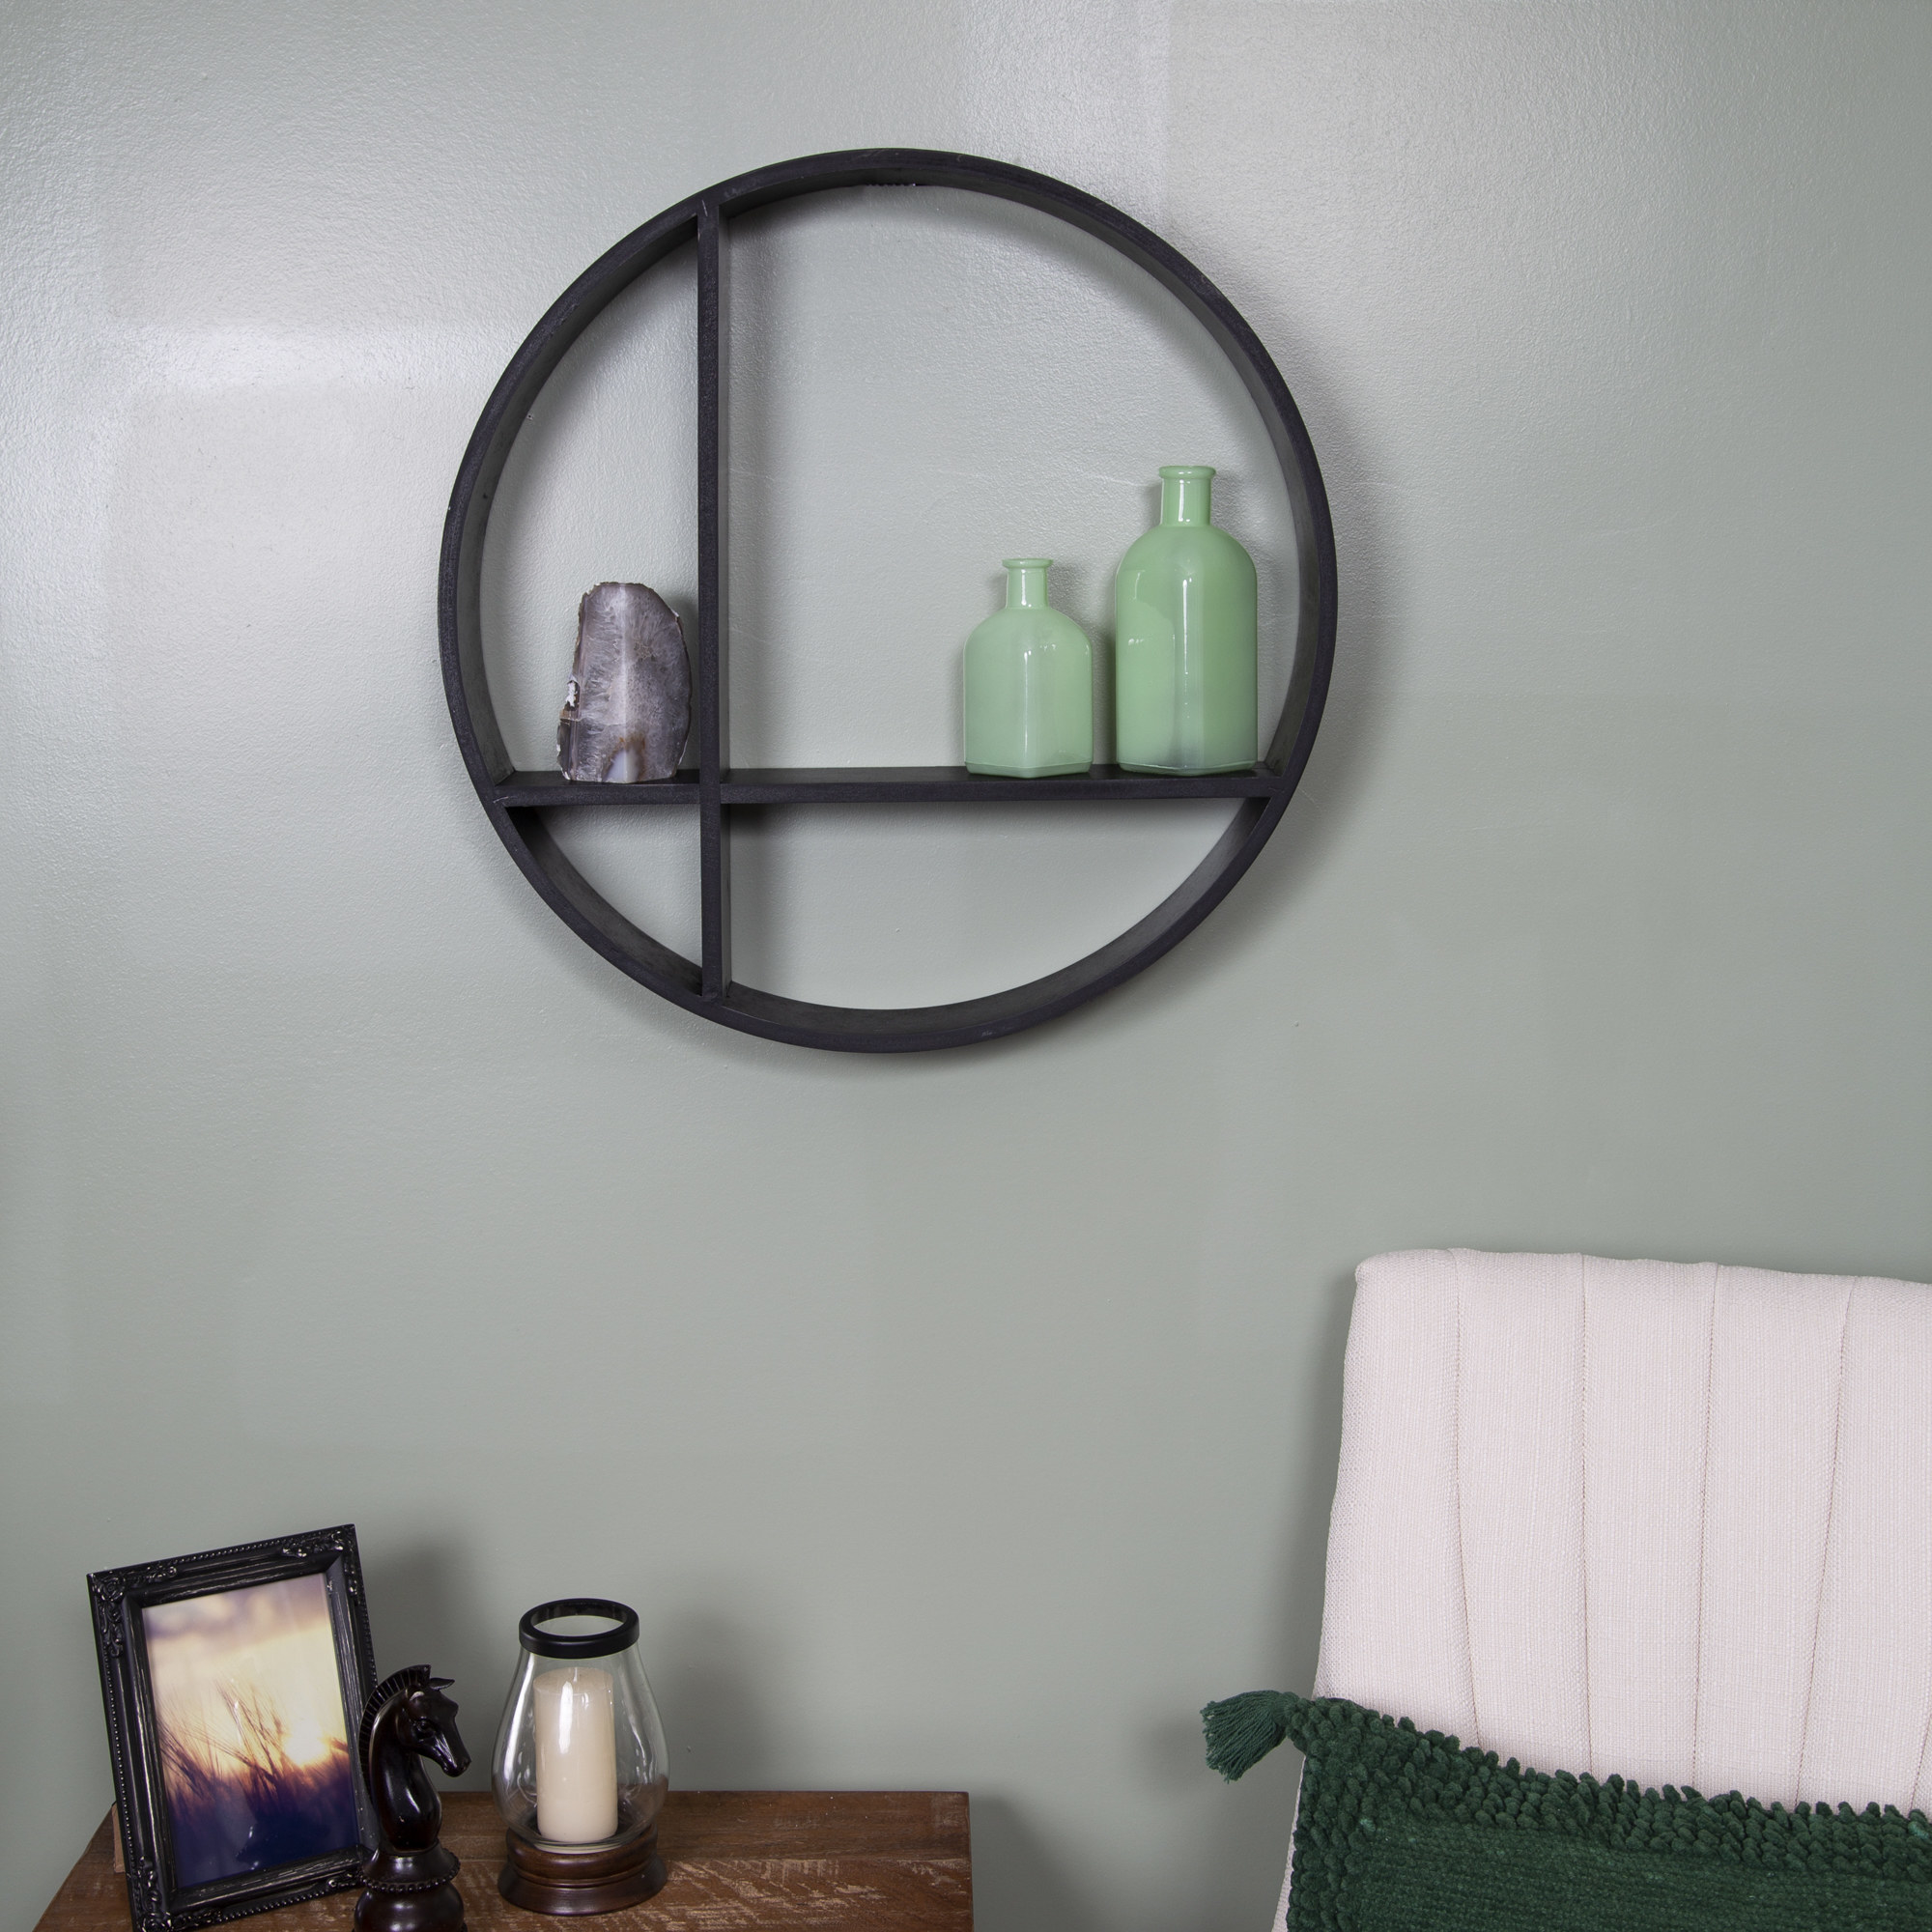 The shelf, which is round, and has a shelf across the width, as well as a divider along the length